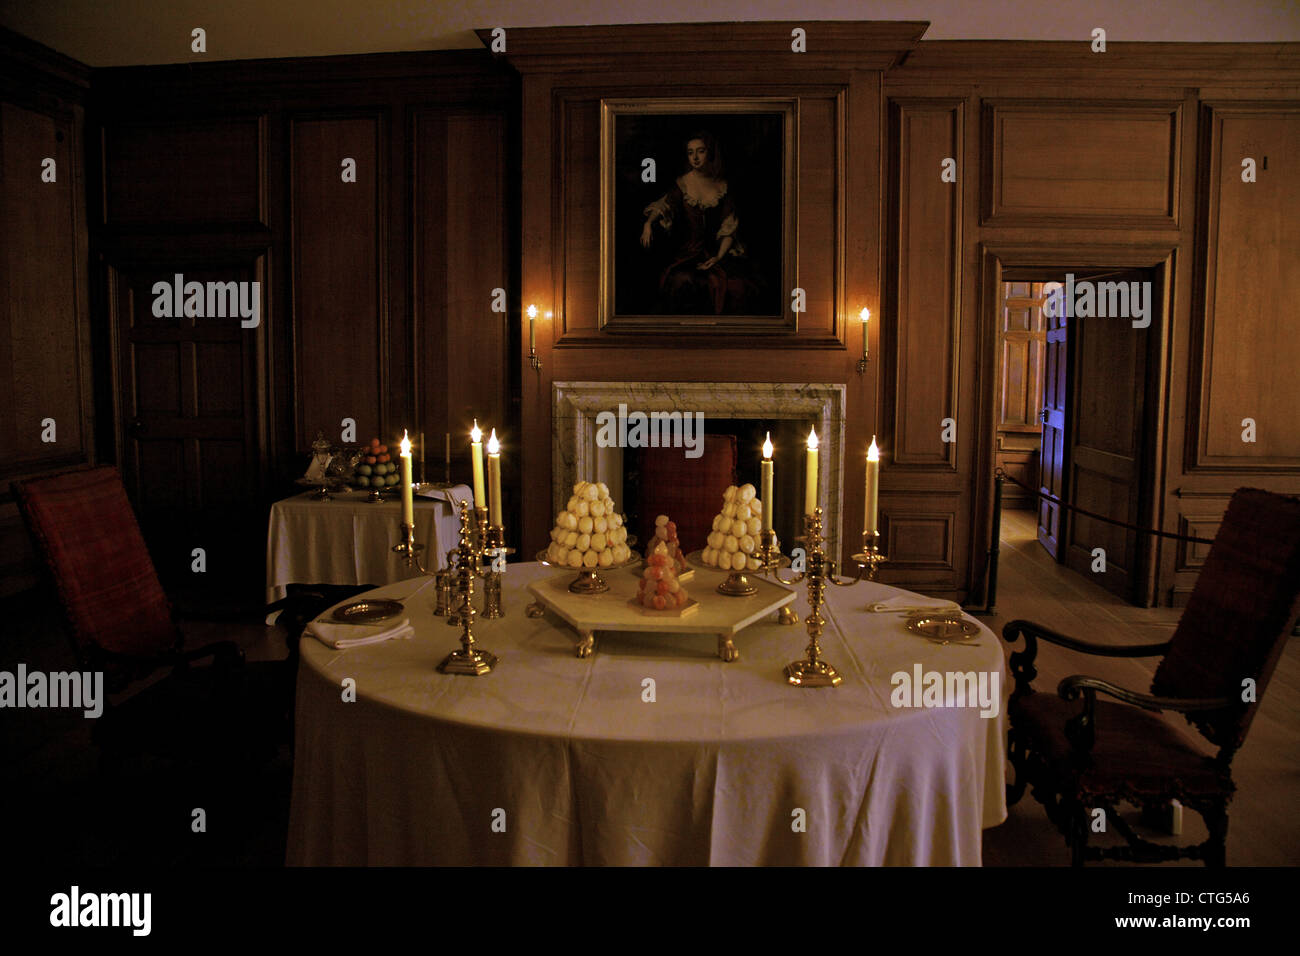 king's private dining room, hampton court palace, london, surrey